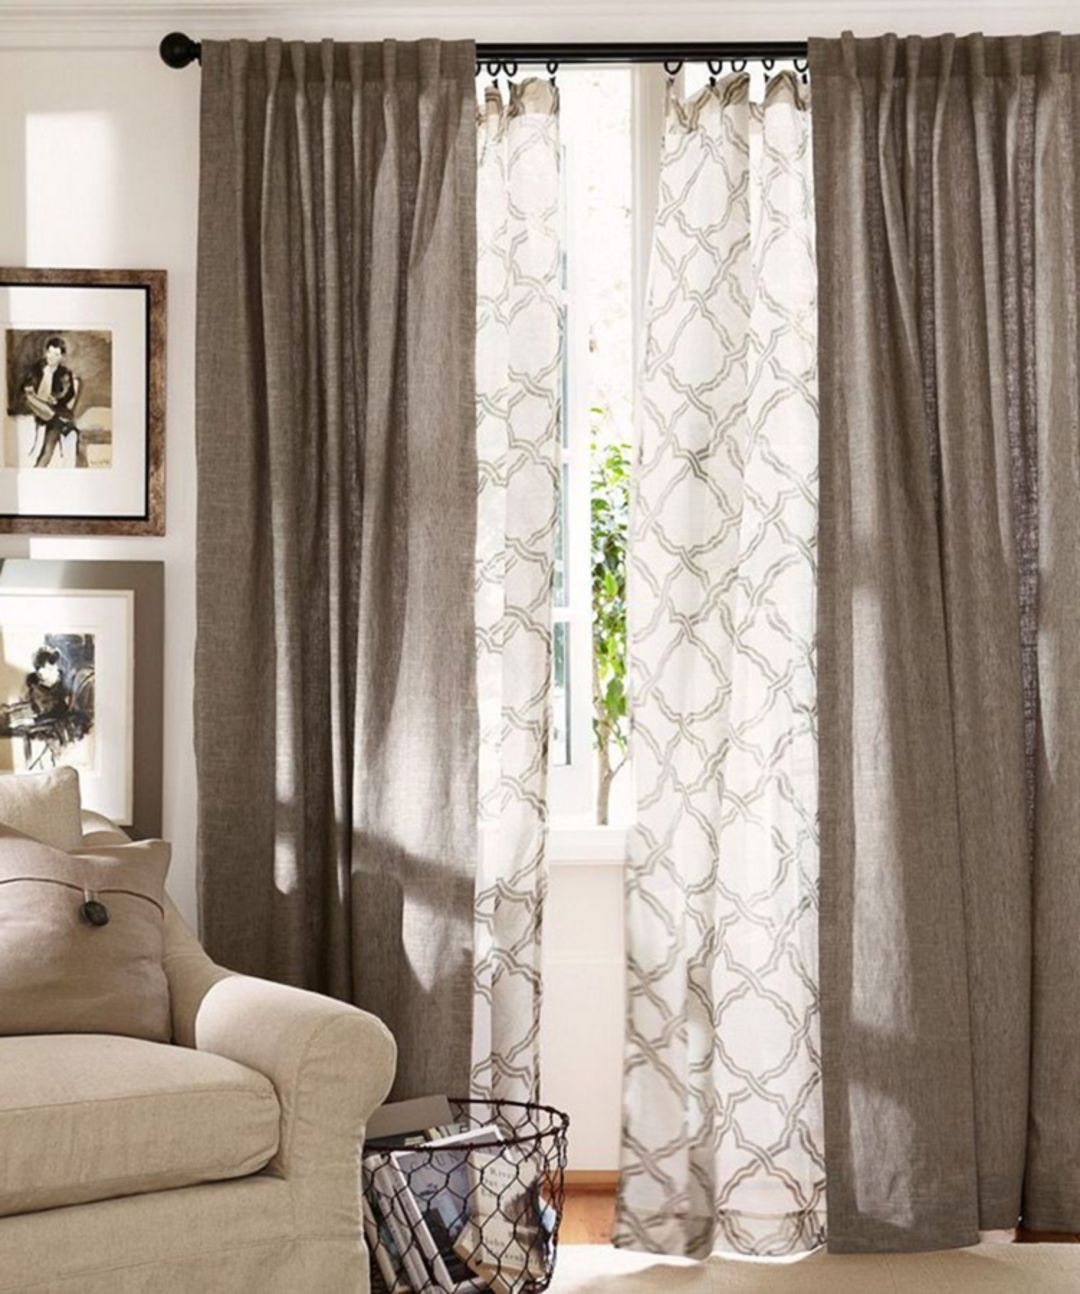 25 Beautiful Living Room Curtain Design Ideas To Enhance Your